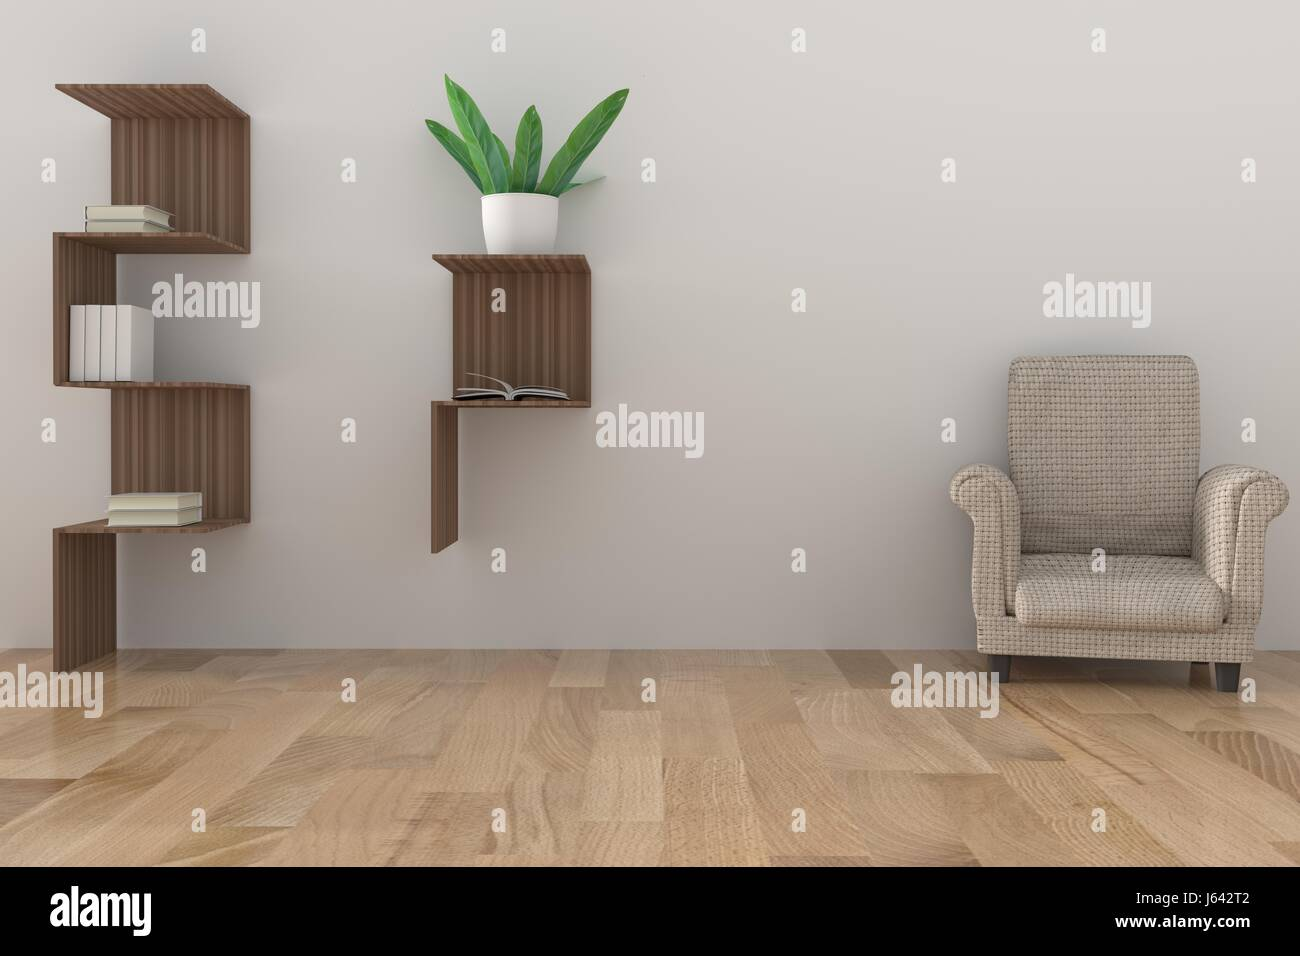 Minimalist Bookshelf With Light Lamp And Houseplant In Empty Room Design 3D Rendering